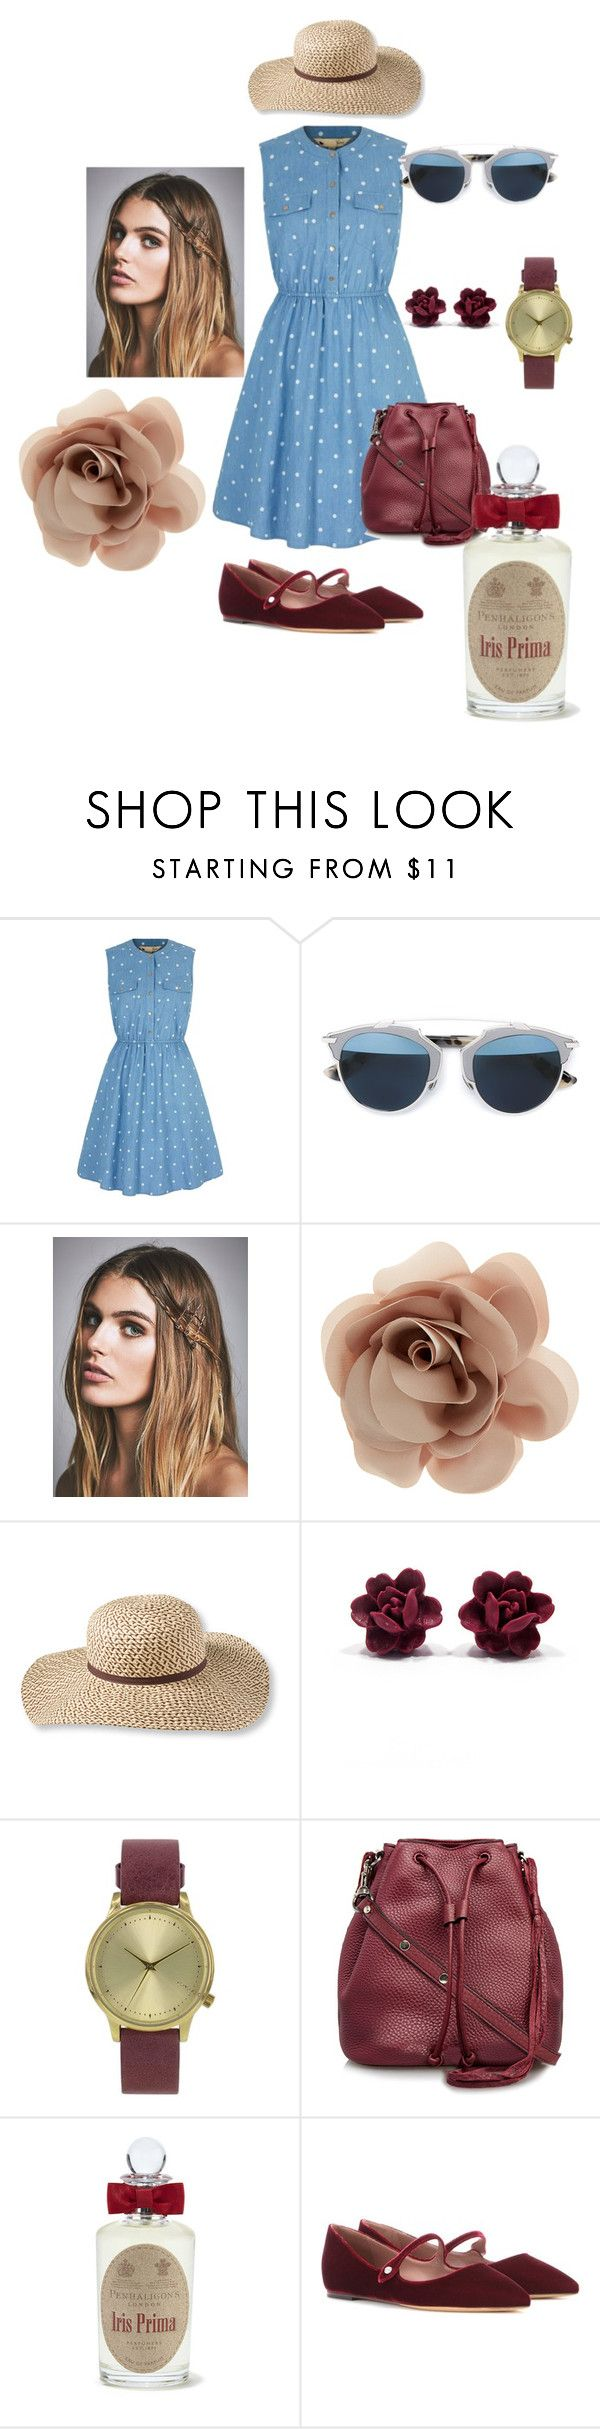 """""""6th"""" by marialibra on Polyvore featuring Yumi, Christian Dior, Free People, Accessorize, L.L.Bean, Topshop, Rebecca Minkoff, PENHALIGON'S, Tabitha Simmons and women's clothing"""